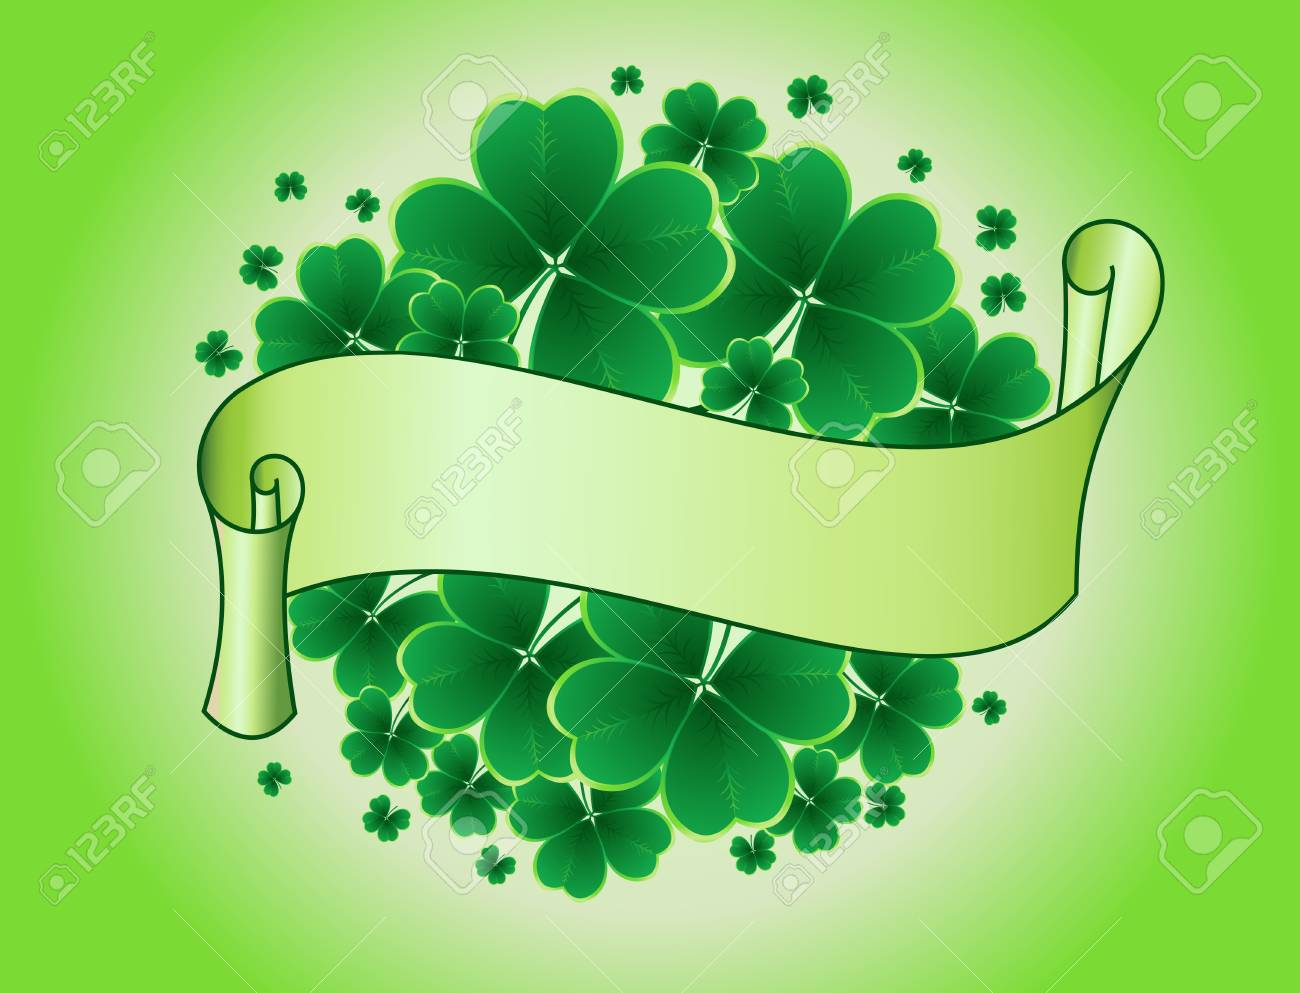 clover background for the St. Patrick's Day Stock Vector - 8776994